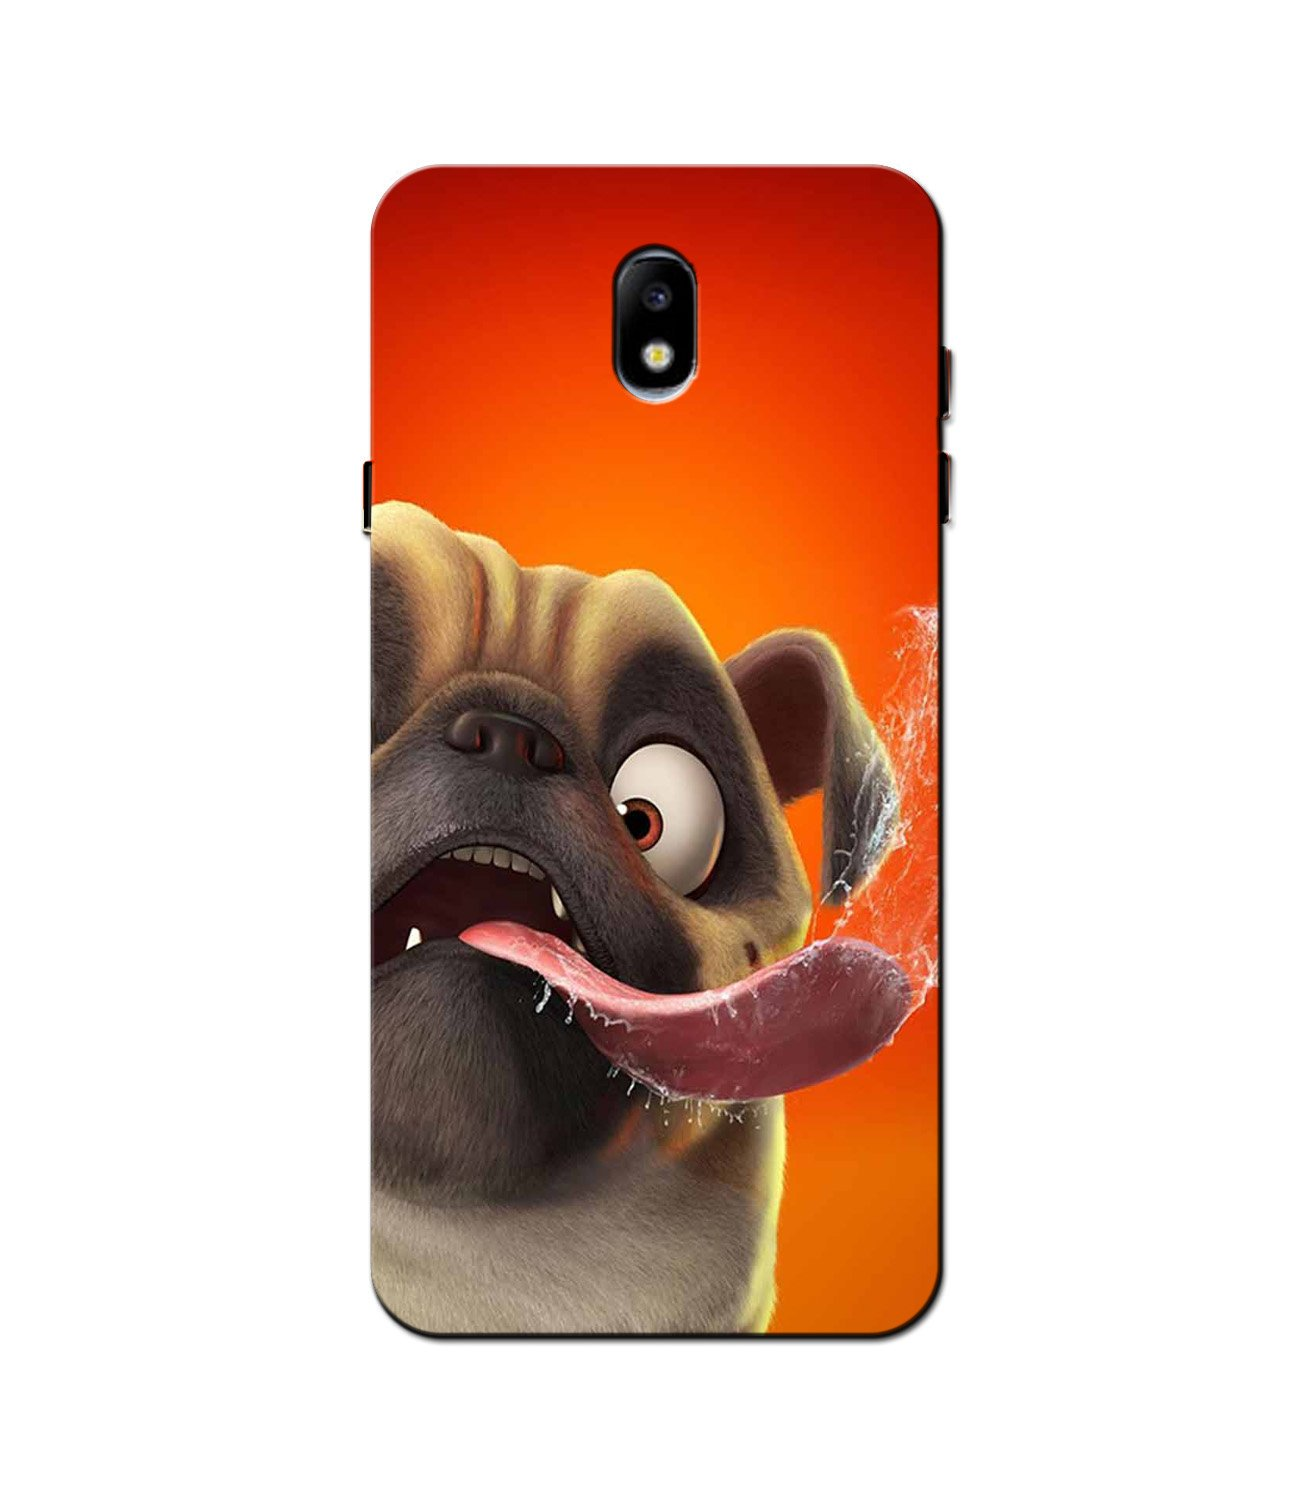 Dog Mobile Back Case for Galaxy J5 Pro  (Design - 343)